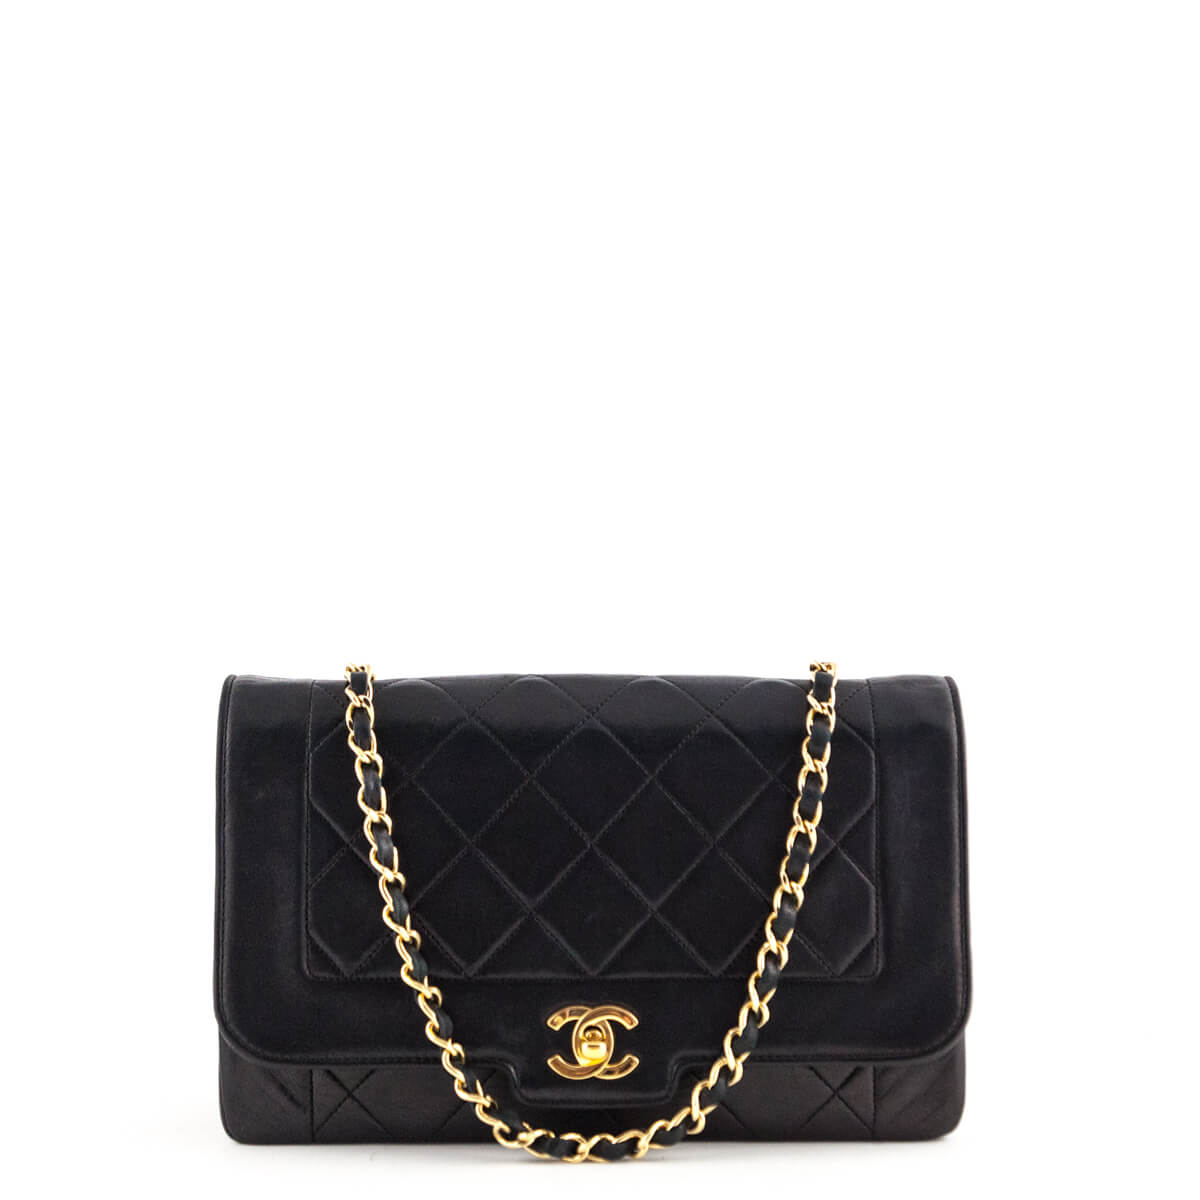 Chanel Black Lambskin Vintage Single Flap - LOVE that BAG - Preowned  Authentic Designer Handbags ... dc0d98b19311d